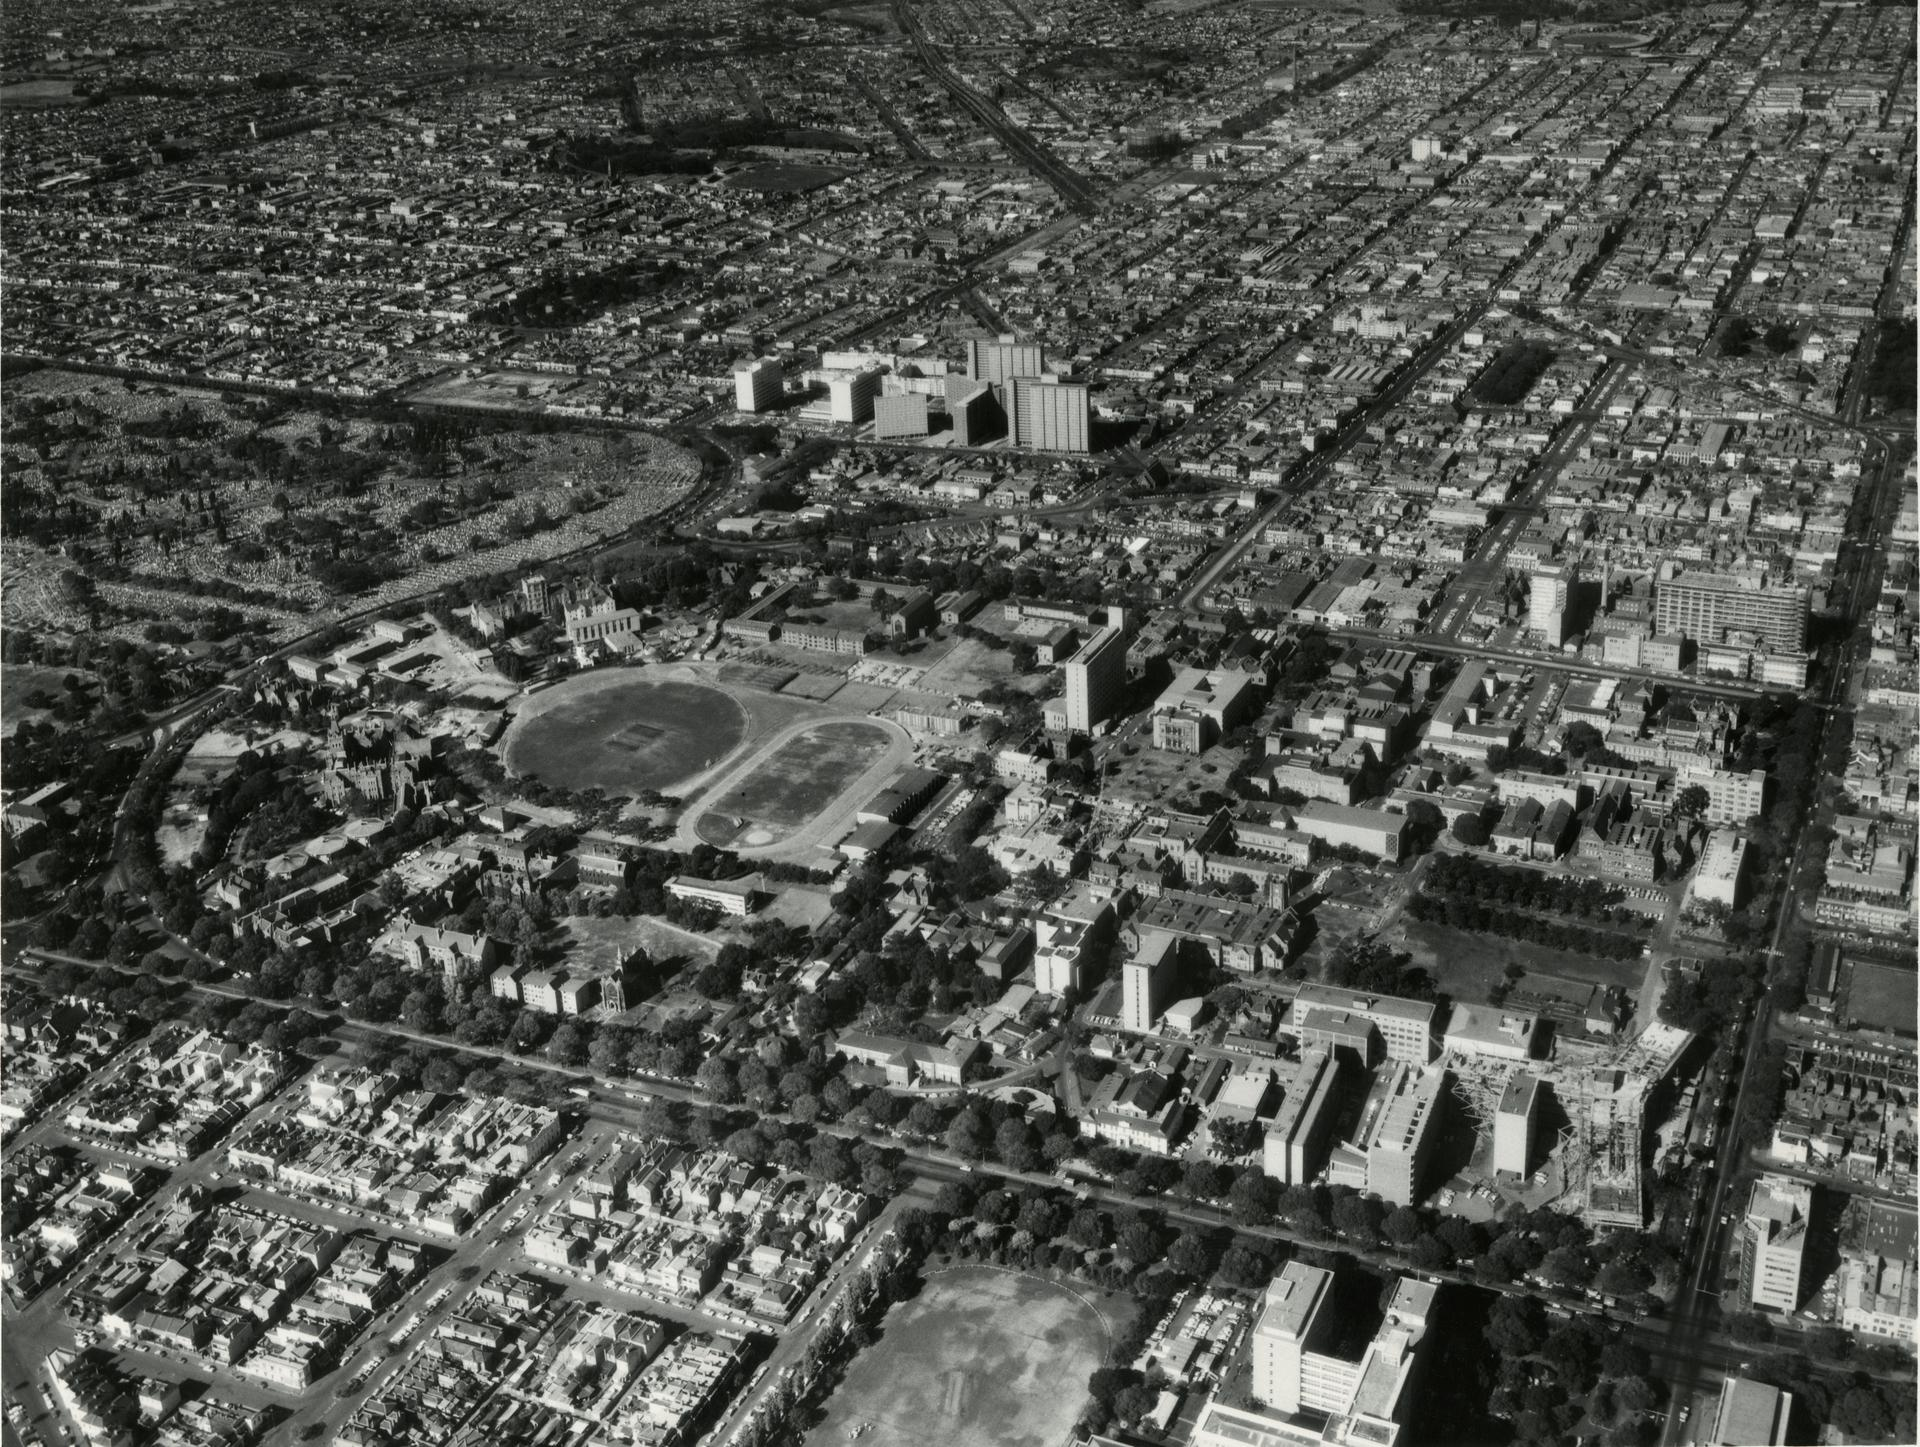 Aerial view showing the Medical precinct building in stages of completion, 1960s